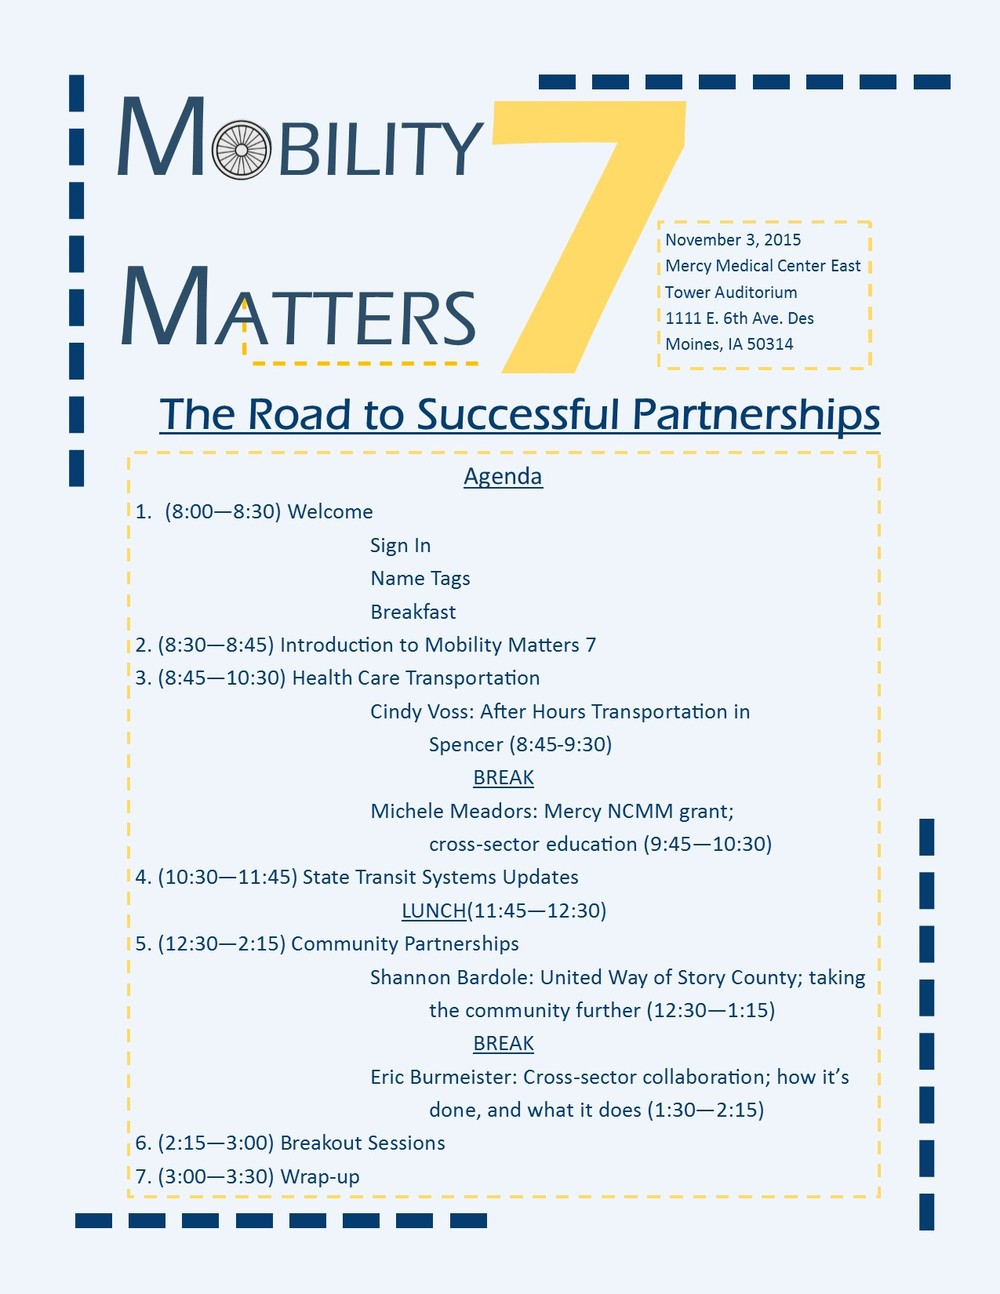 Mobility_matters_7_agenda_rough_draft